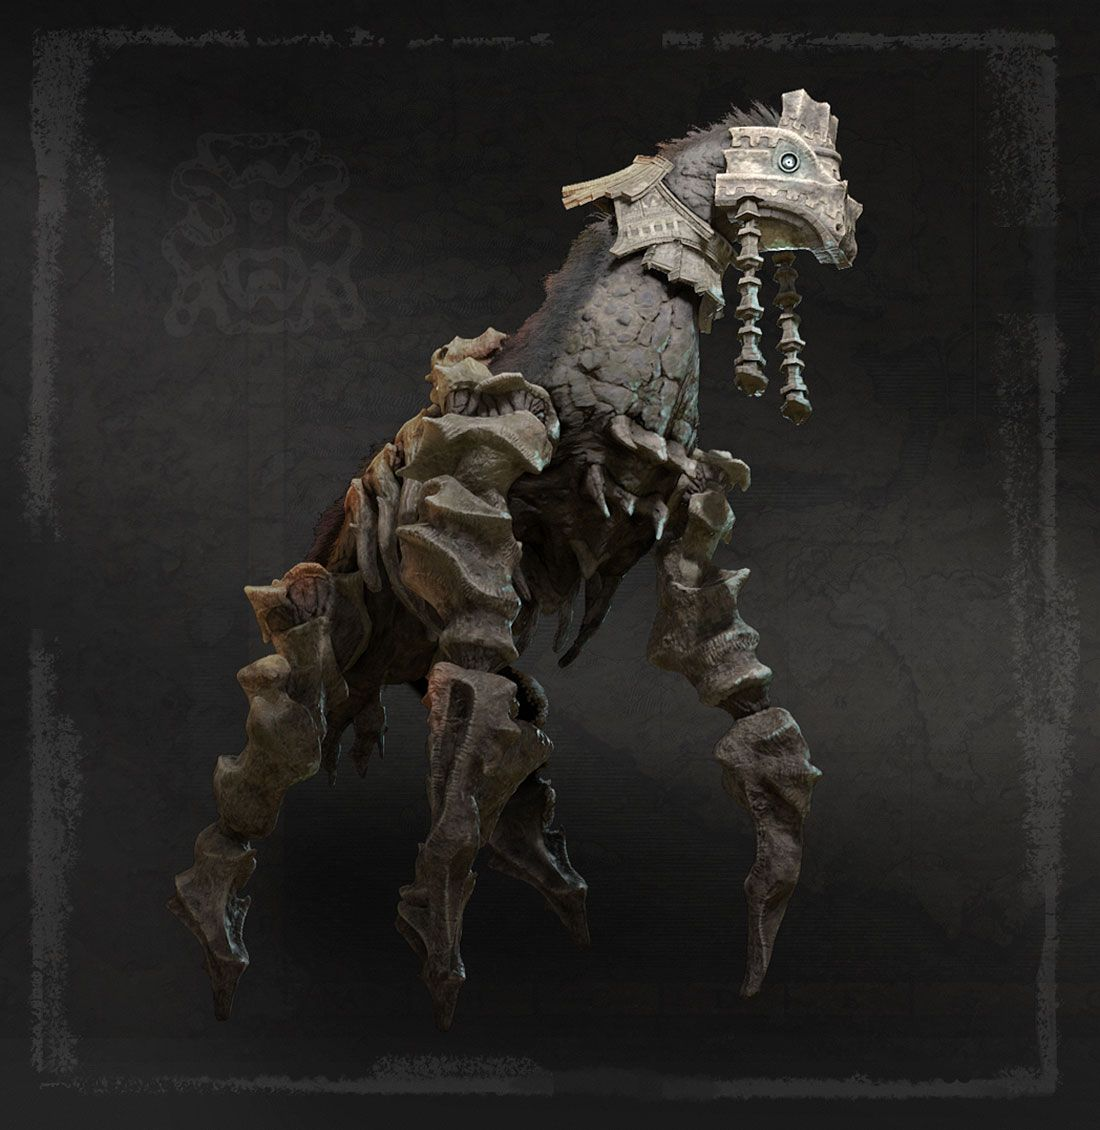 Colossus 4 Phaedra From Shadow Of The Colossus 2018 Shadow Of The Colossus Shadow Creatures Colossus